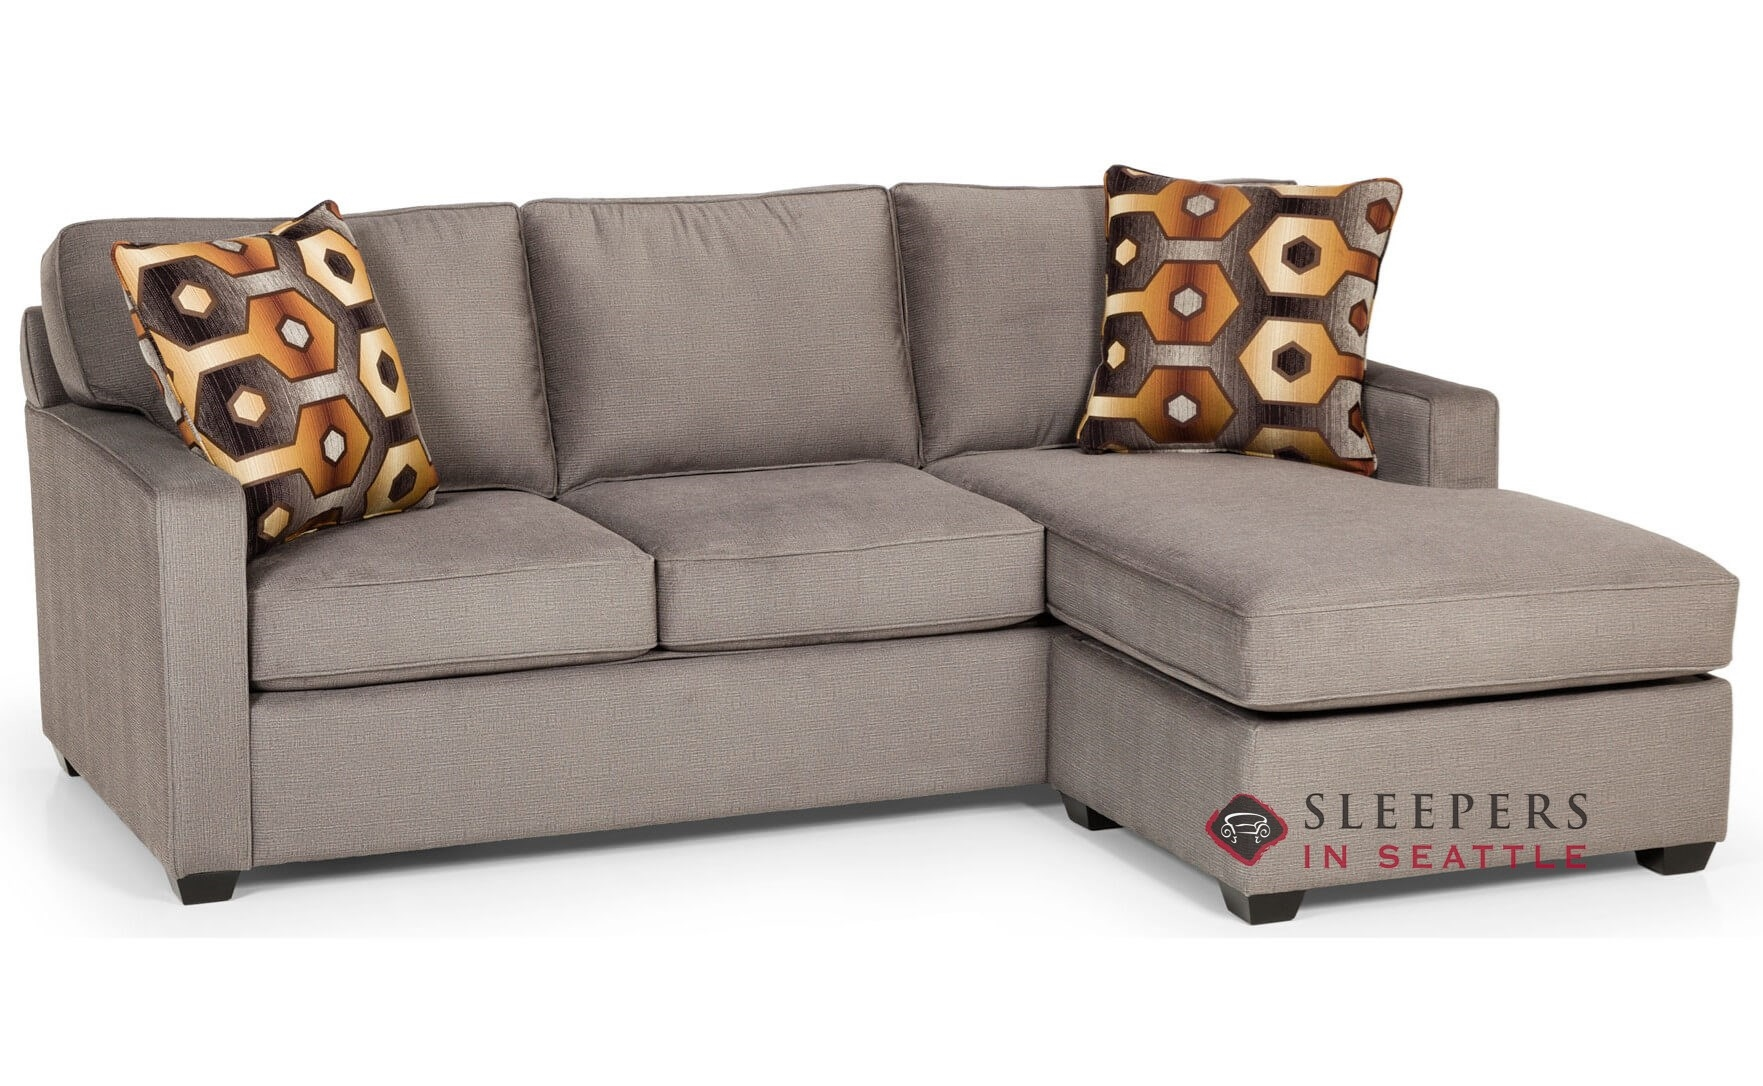 The Stanton 403 Chaise Sectional Queen Sleeper Sofa With Storage